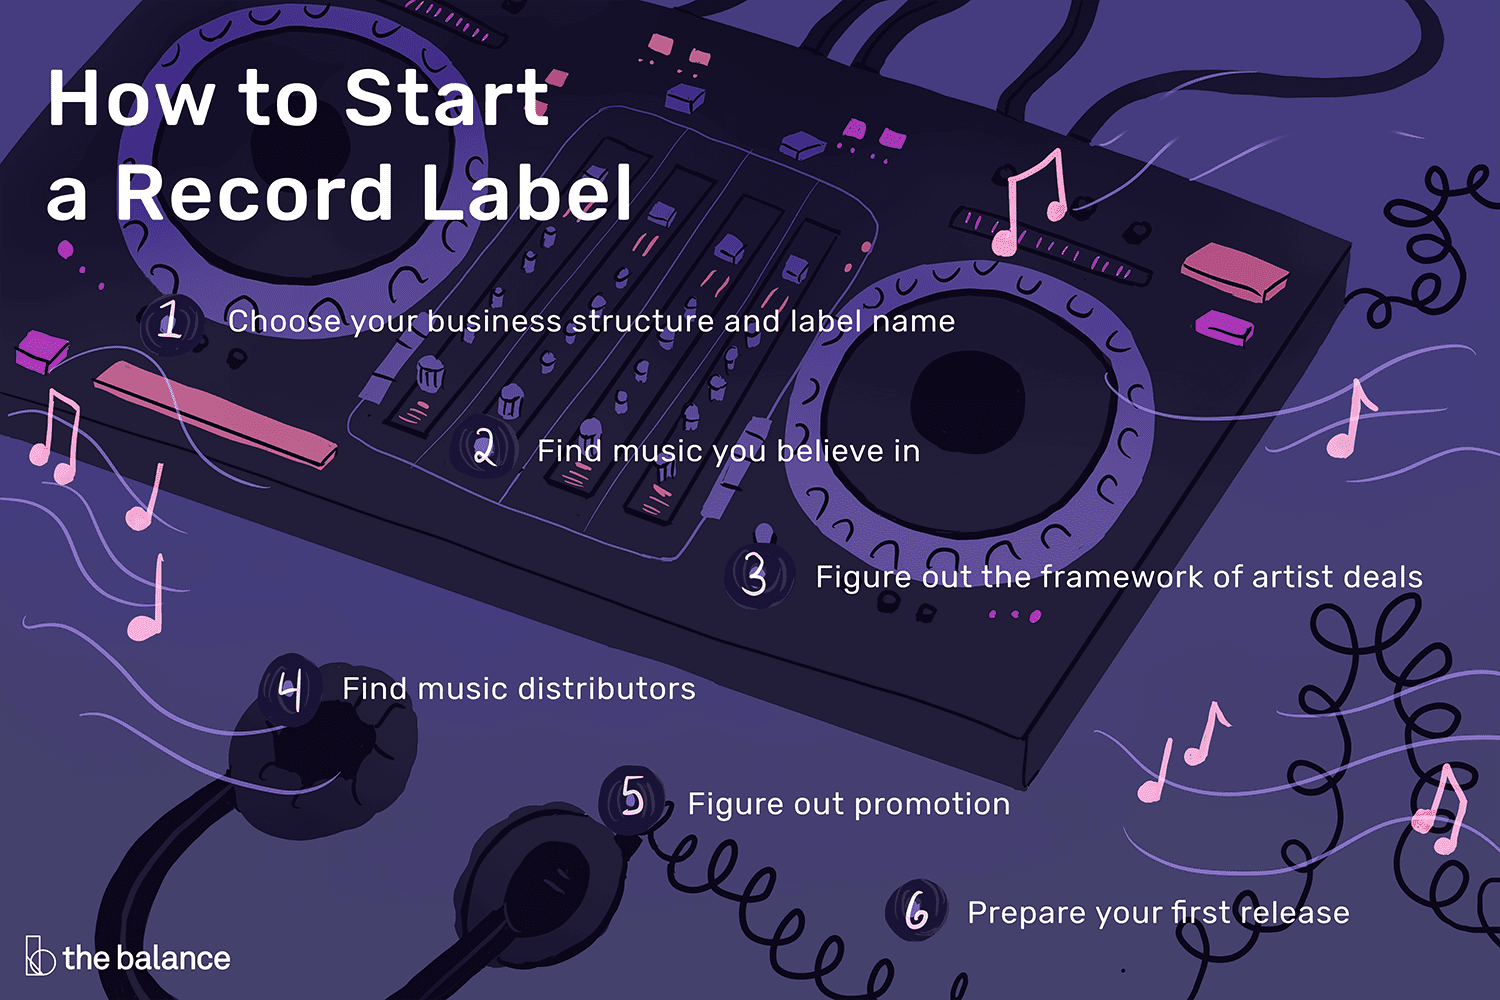 How to start a record label 2460782 finalv3 ct 67a8fe20044347b8bc353715a98a9161 png